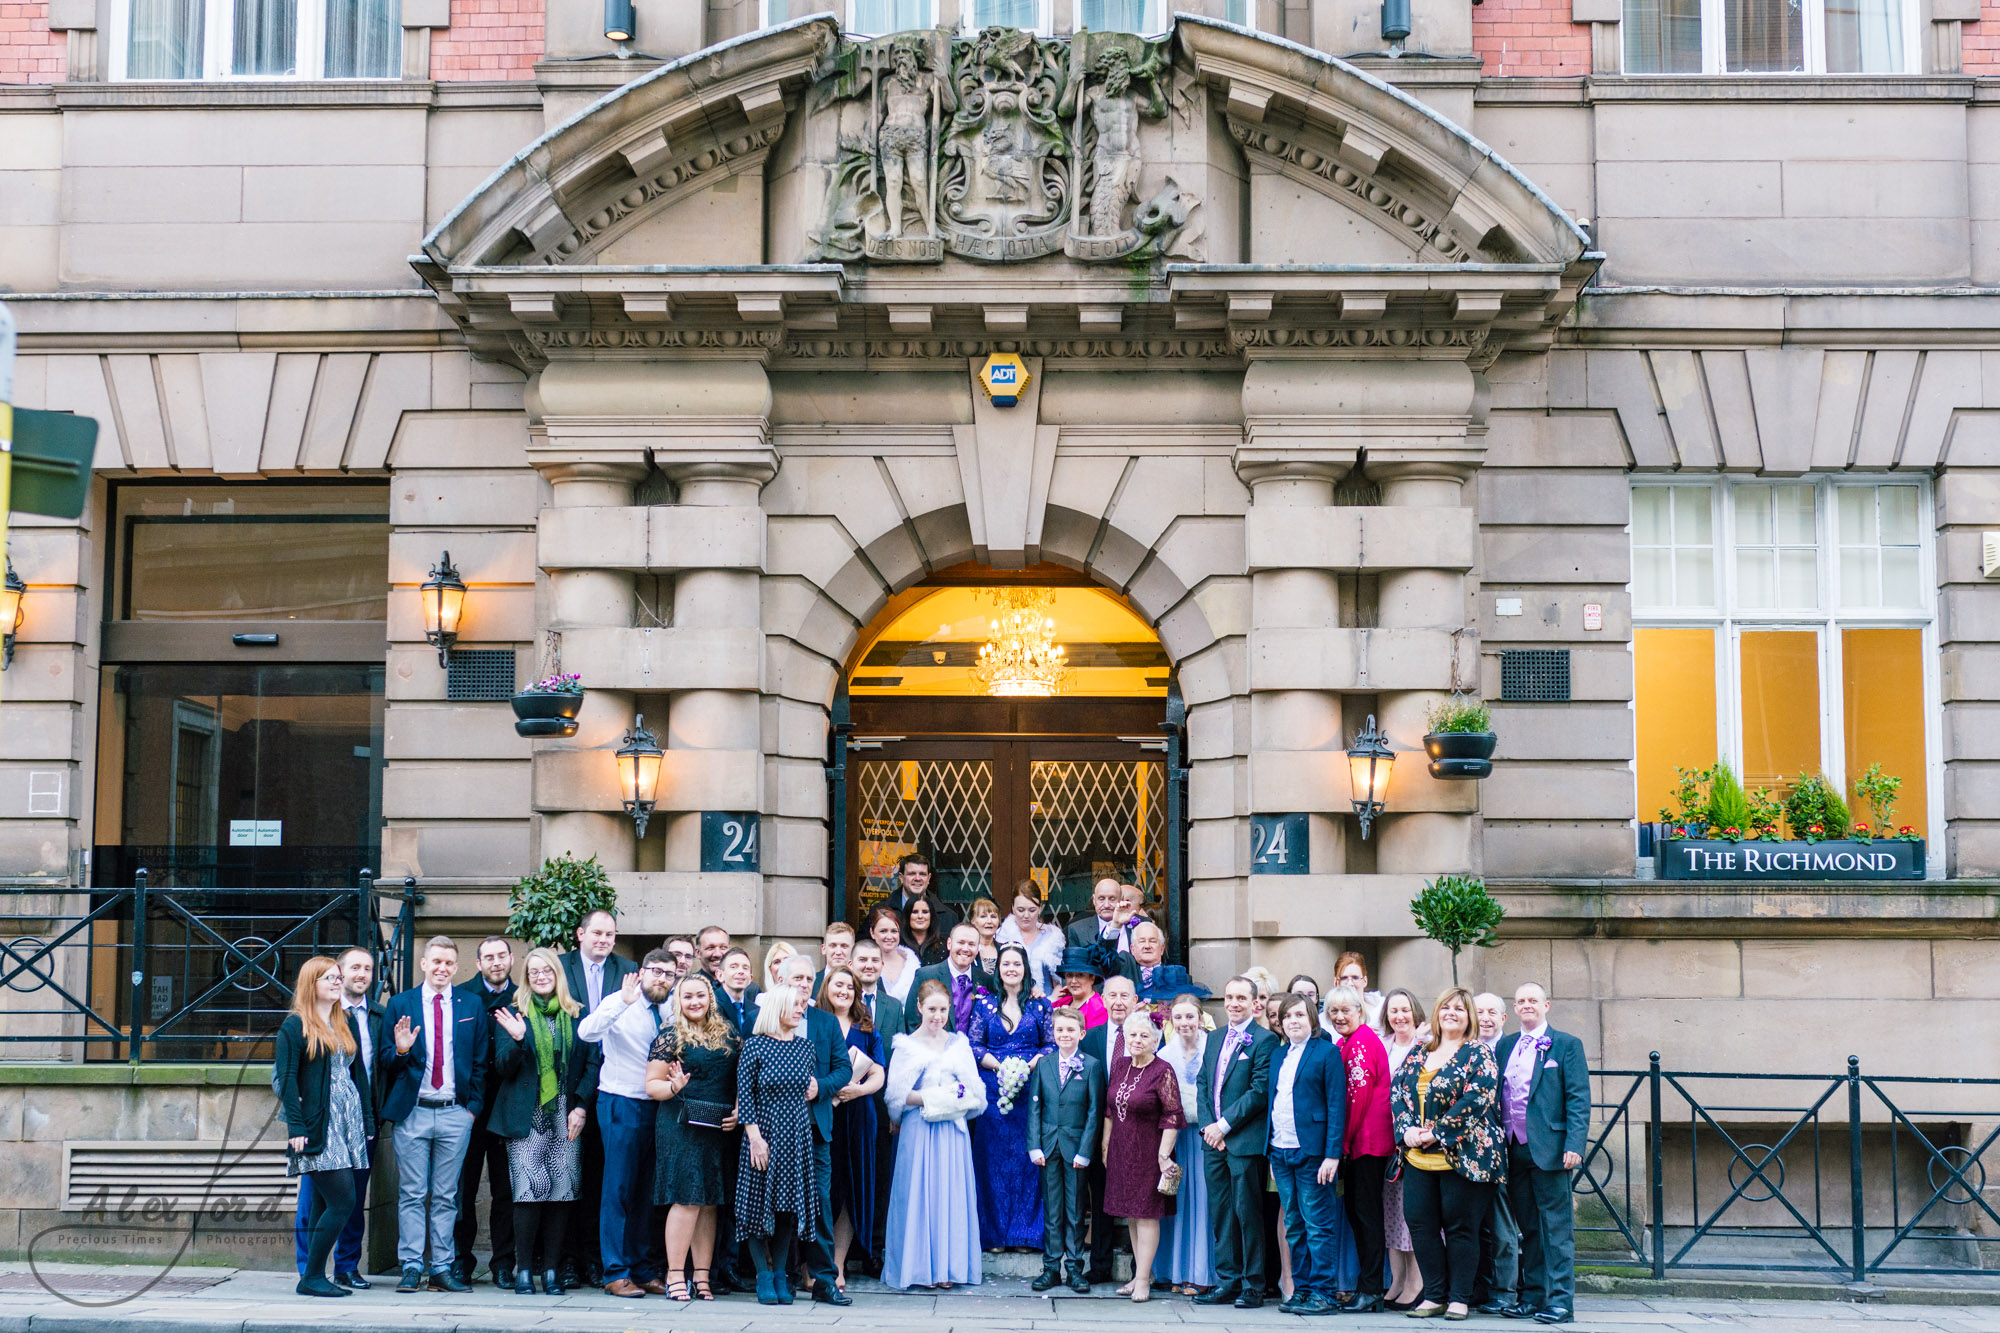 all the wedding guests gather together on the steps of the richmond hotel for a full family photo